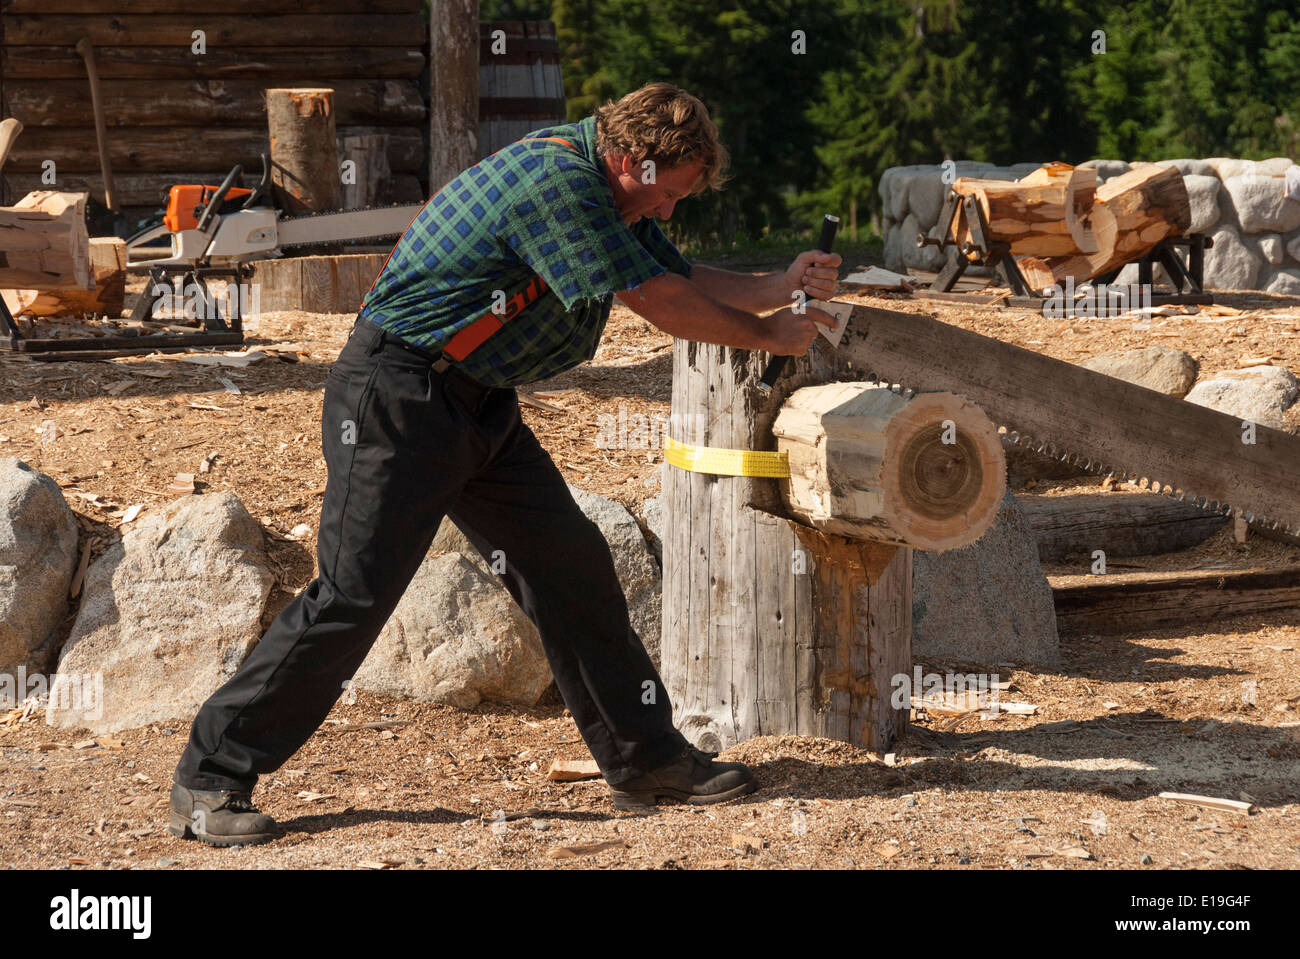 Elk203-1024 Canada, British Columbia, Vancouver, Grouse Mountain, lumberjack log sawing demonstration - Stock Image